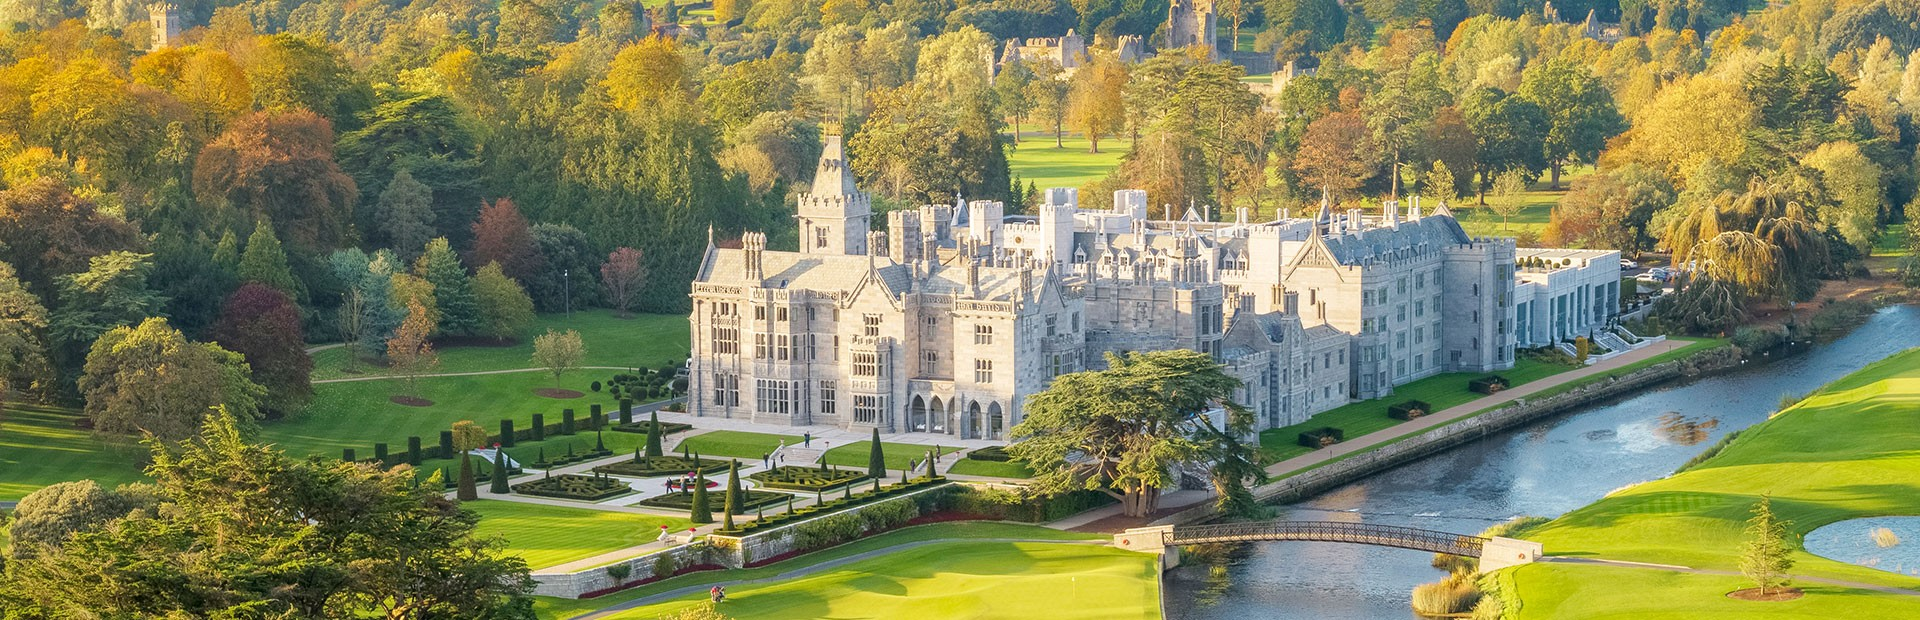 Adare Manor - Tourism & Leisure Construction